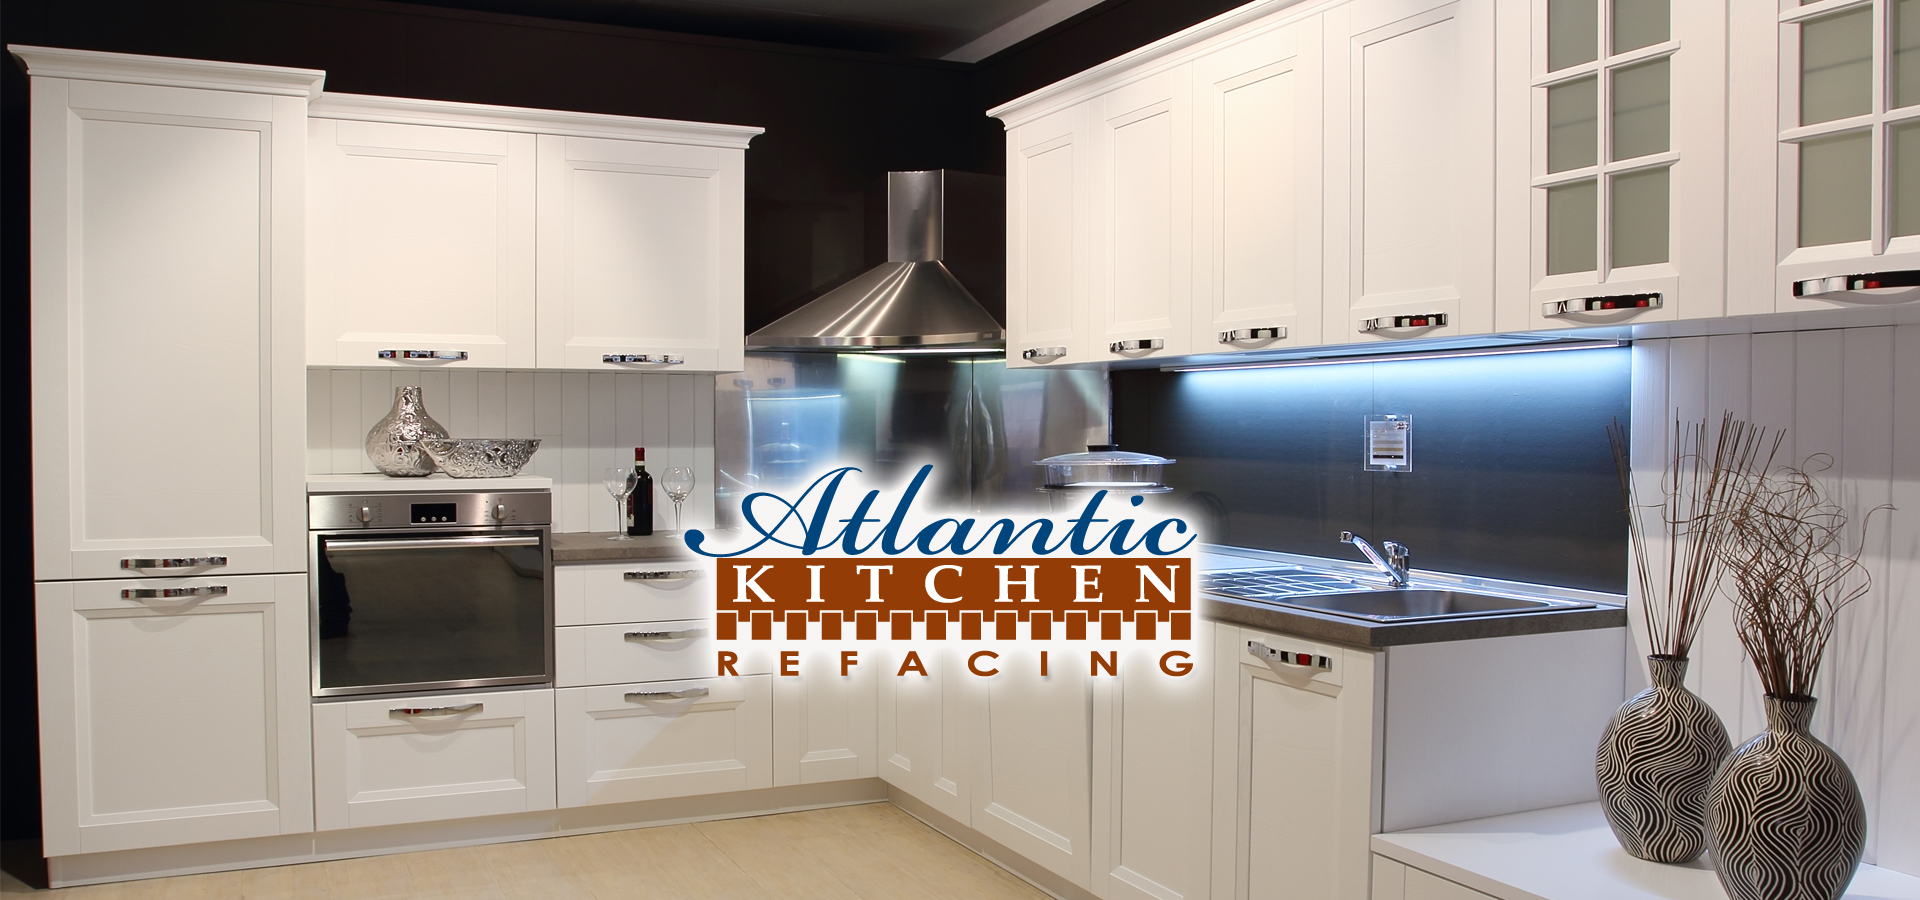 Atlantic Kitchen Refacing Kitchen Refacing Refinishing Halifax Ns